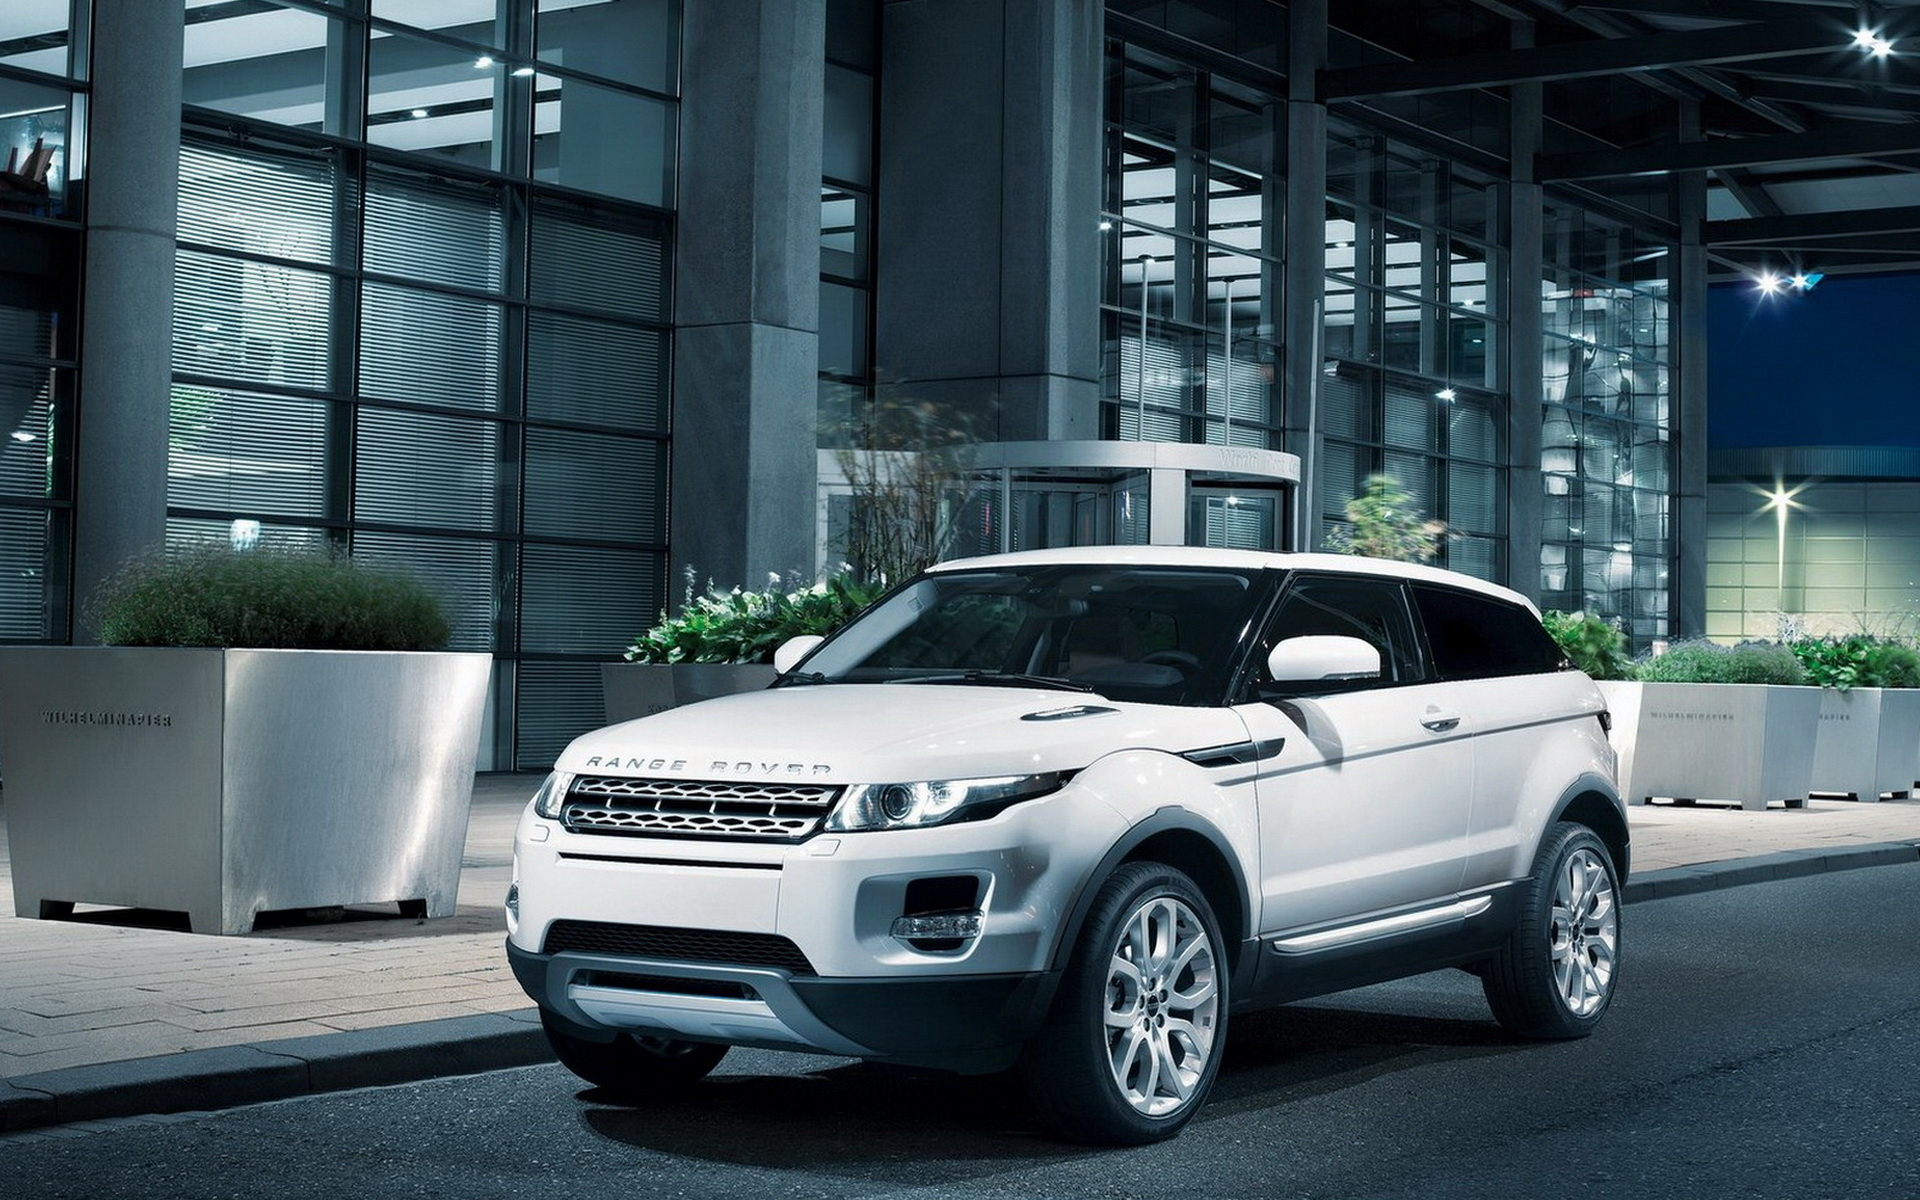 Range Rover Evoque Hd Wallpapers